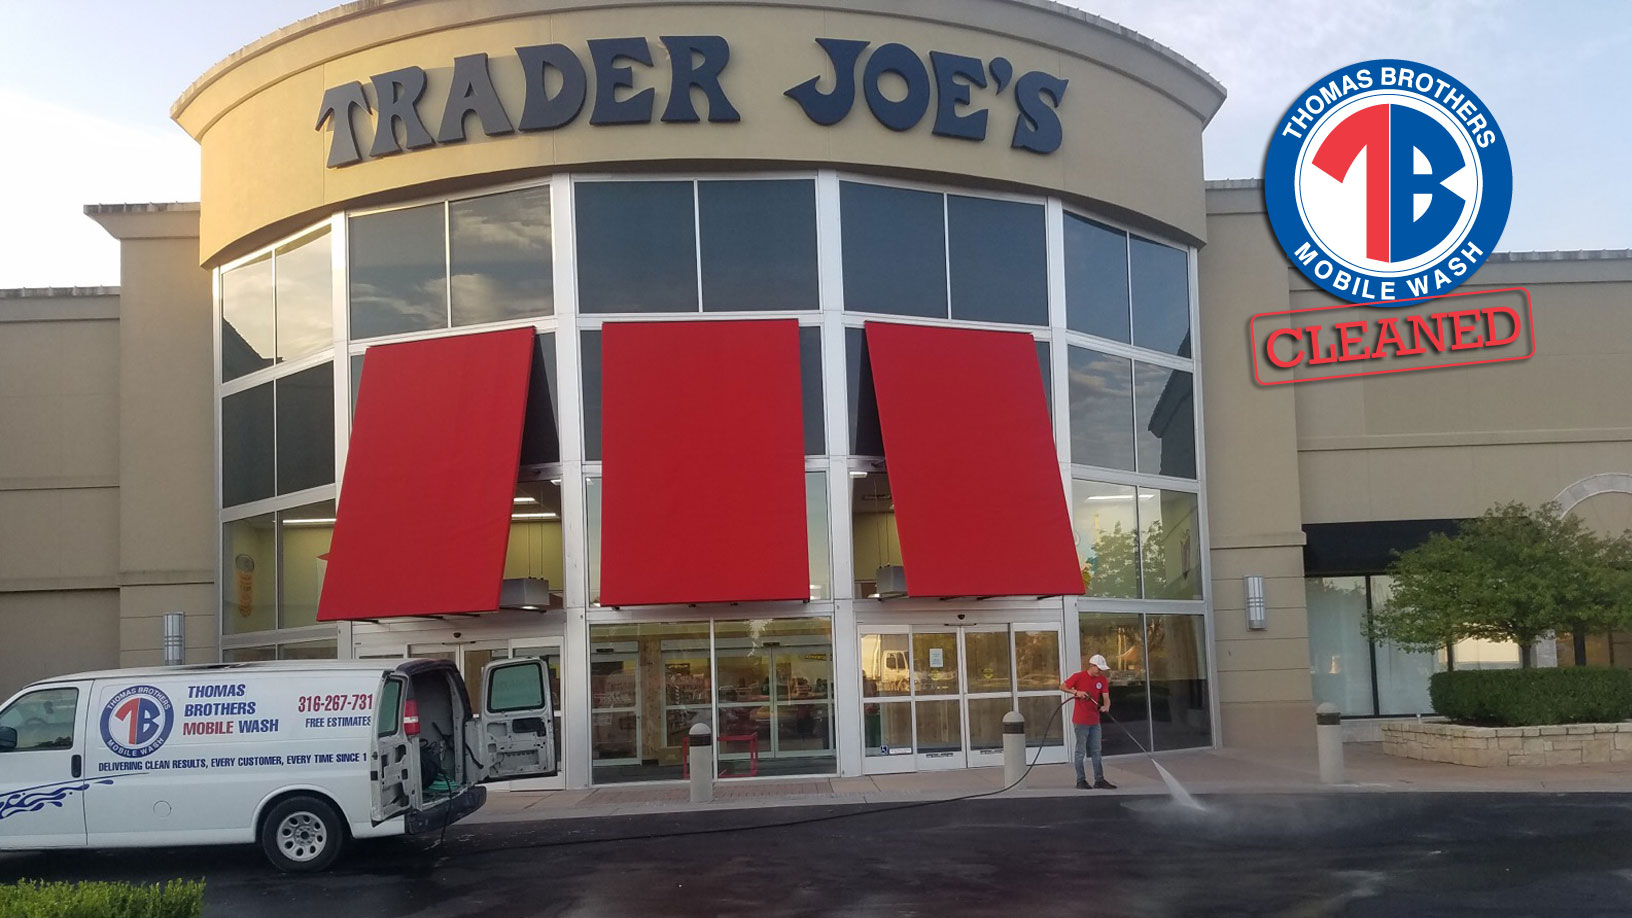 ThomasBros-TraderJoes-PowerWashing-Day.jpg